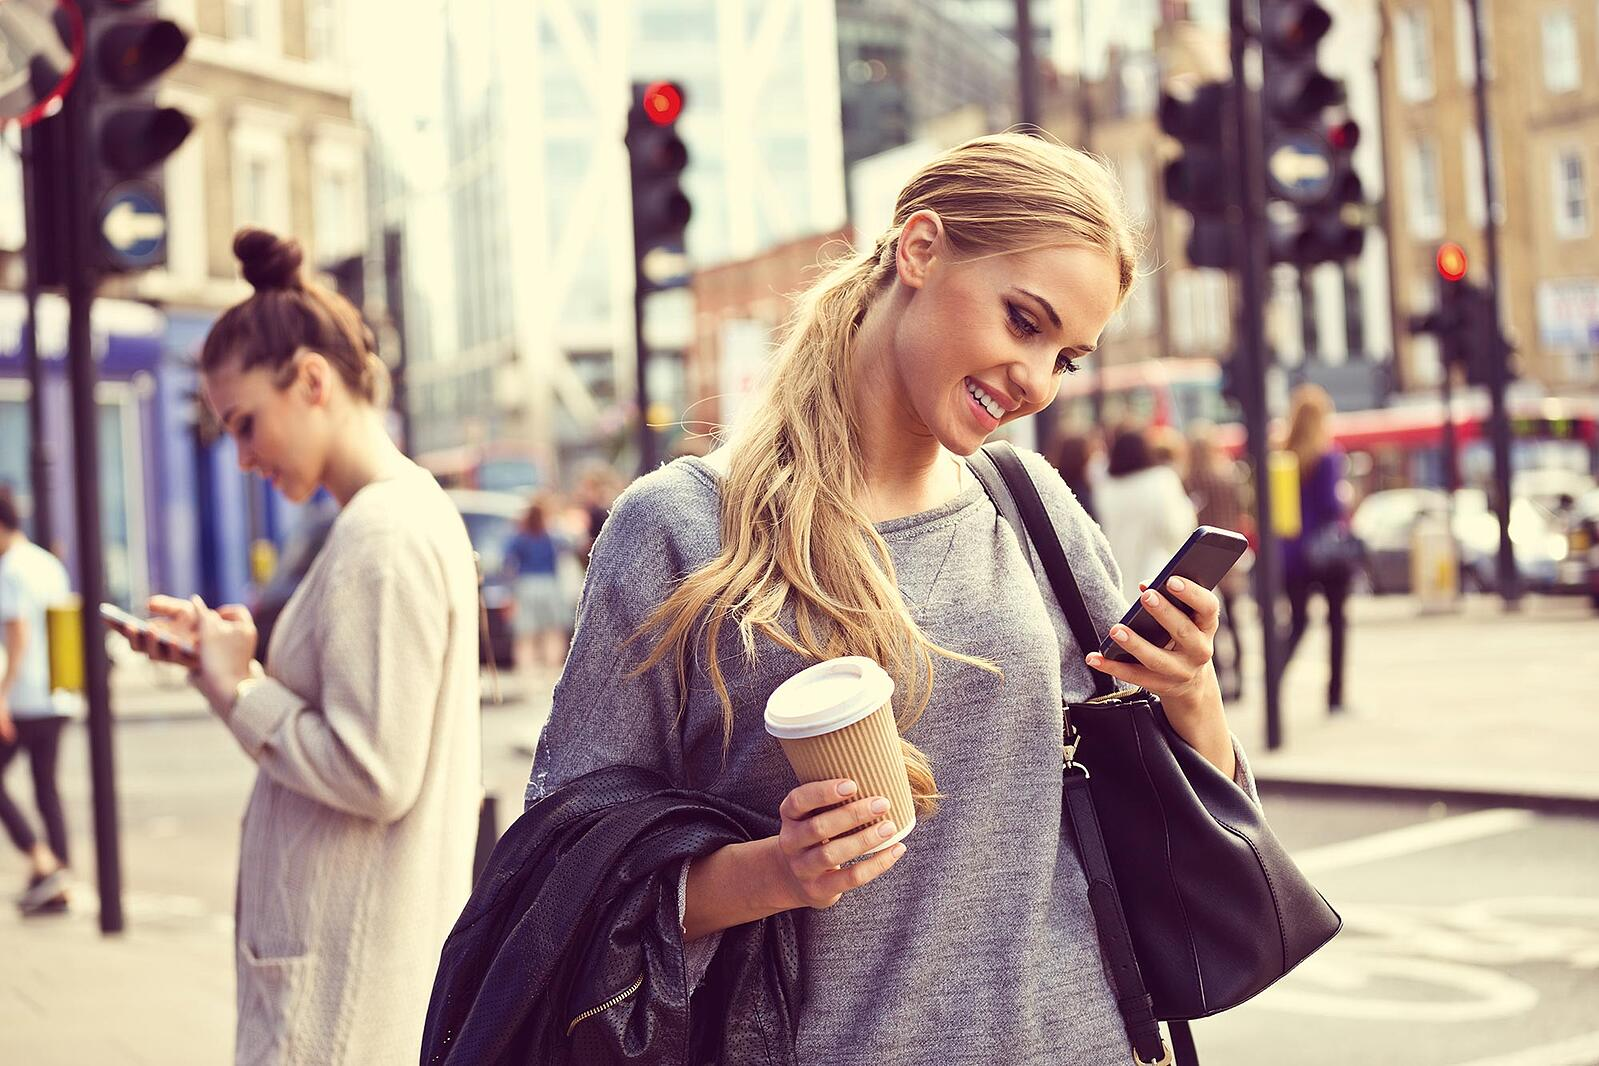 women-in-city-street-using-smartphones.jpg